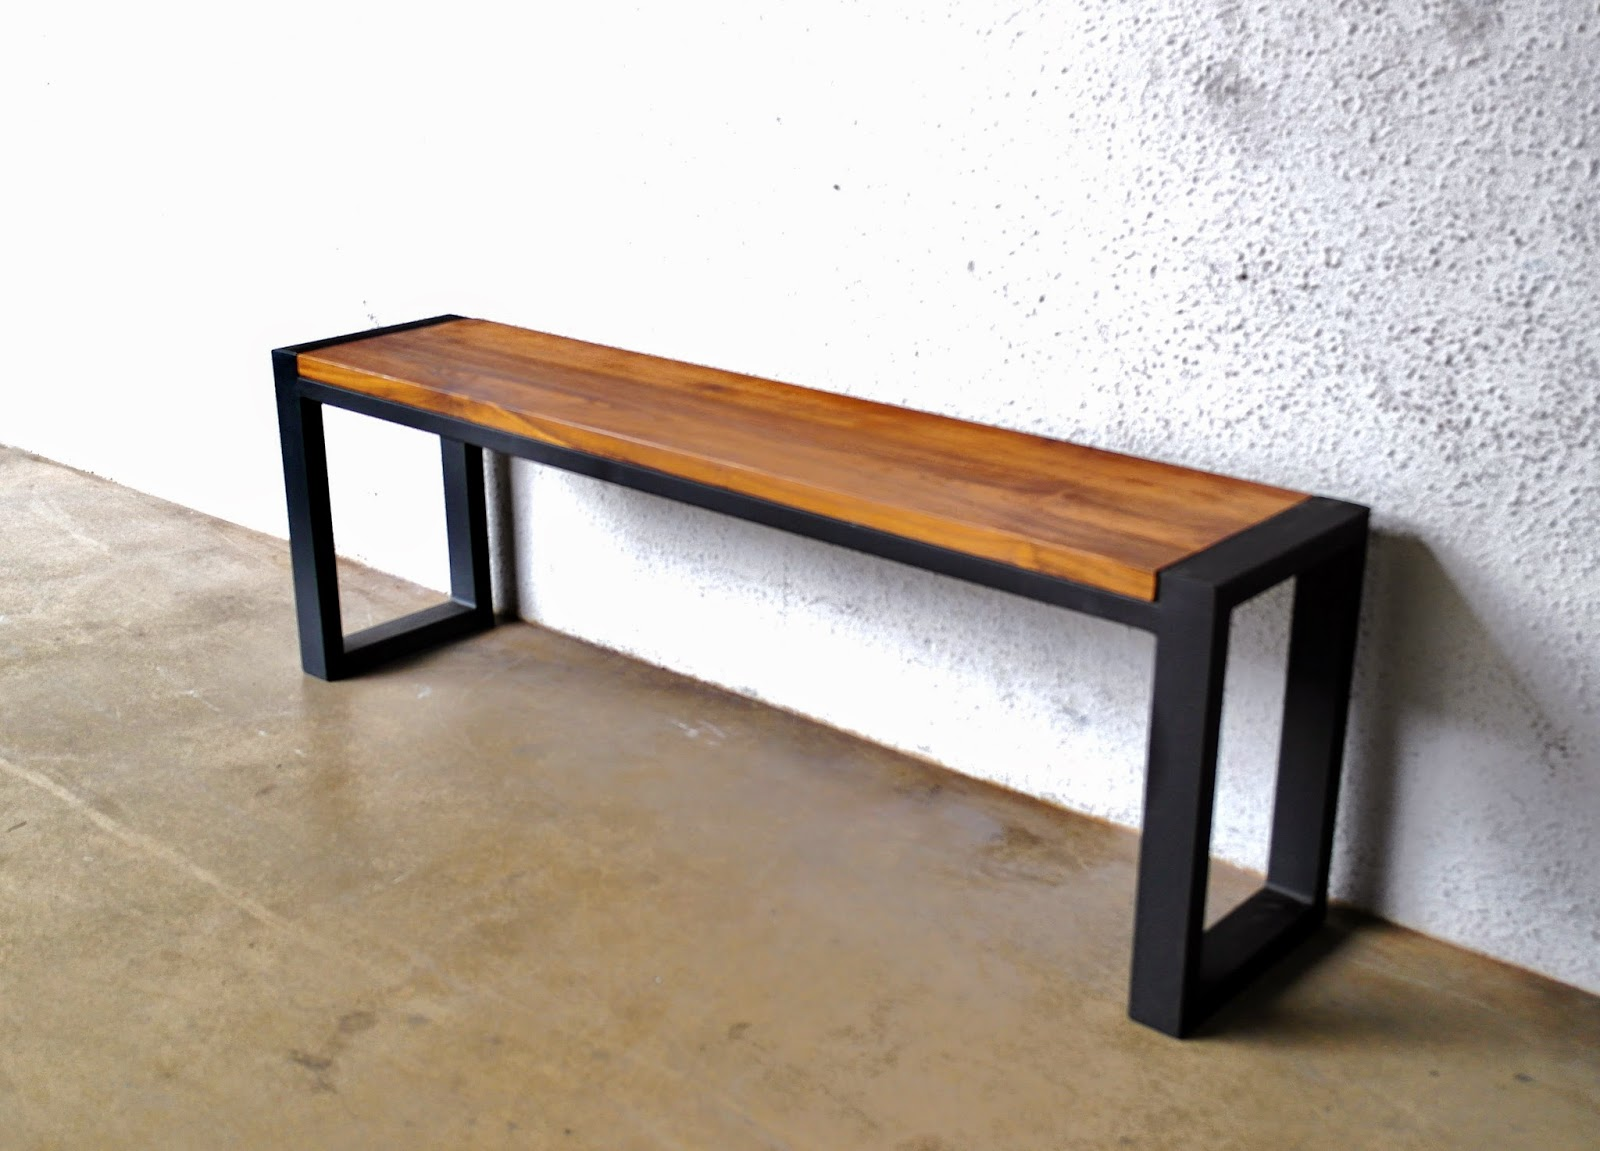 A More Rugged Industrial Inspired Bench Broad Metal Legs On 3 Cm